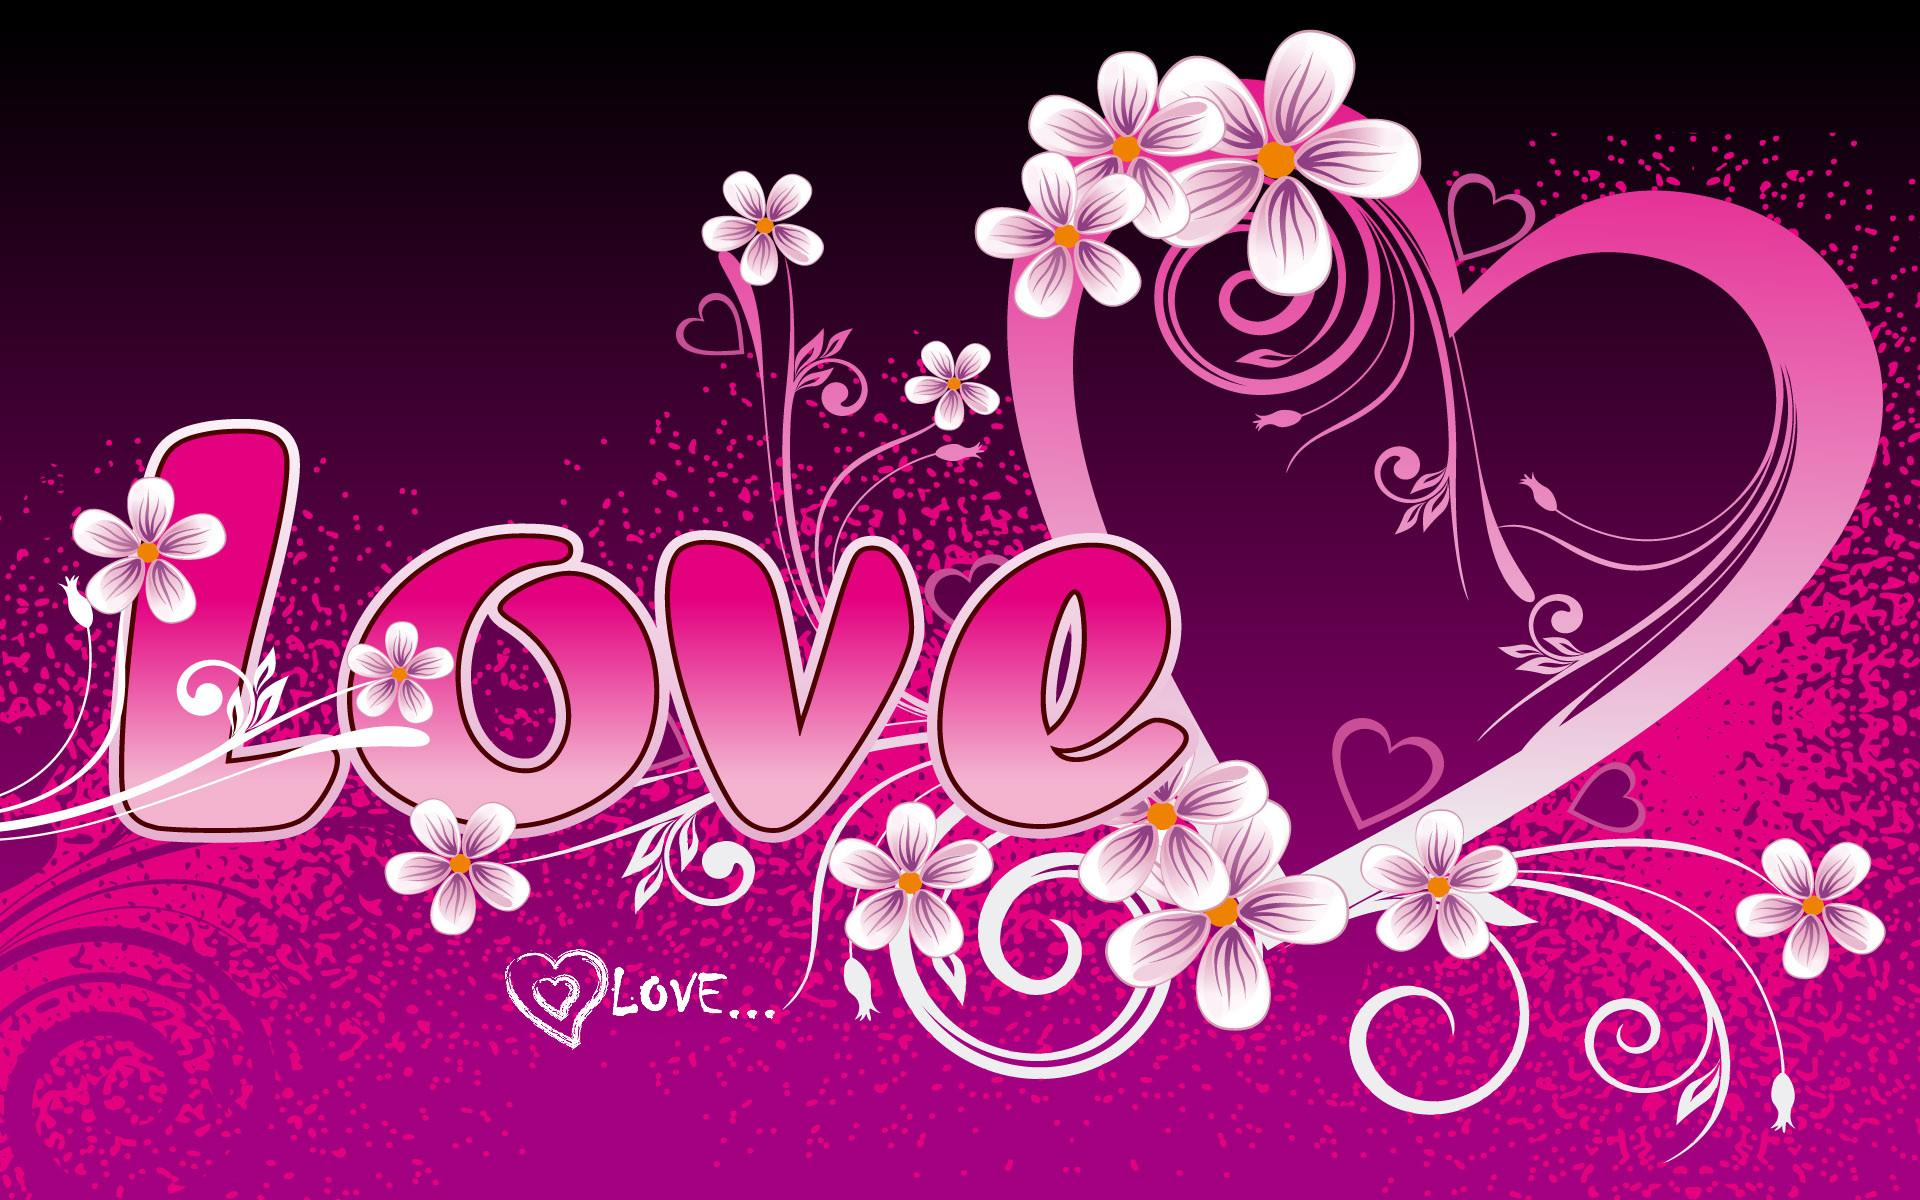 Love heart - Love Wallpaper (30417688) - Fanpop